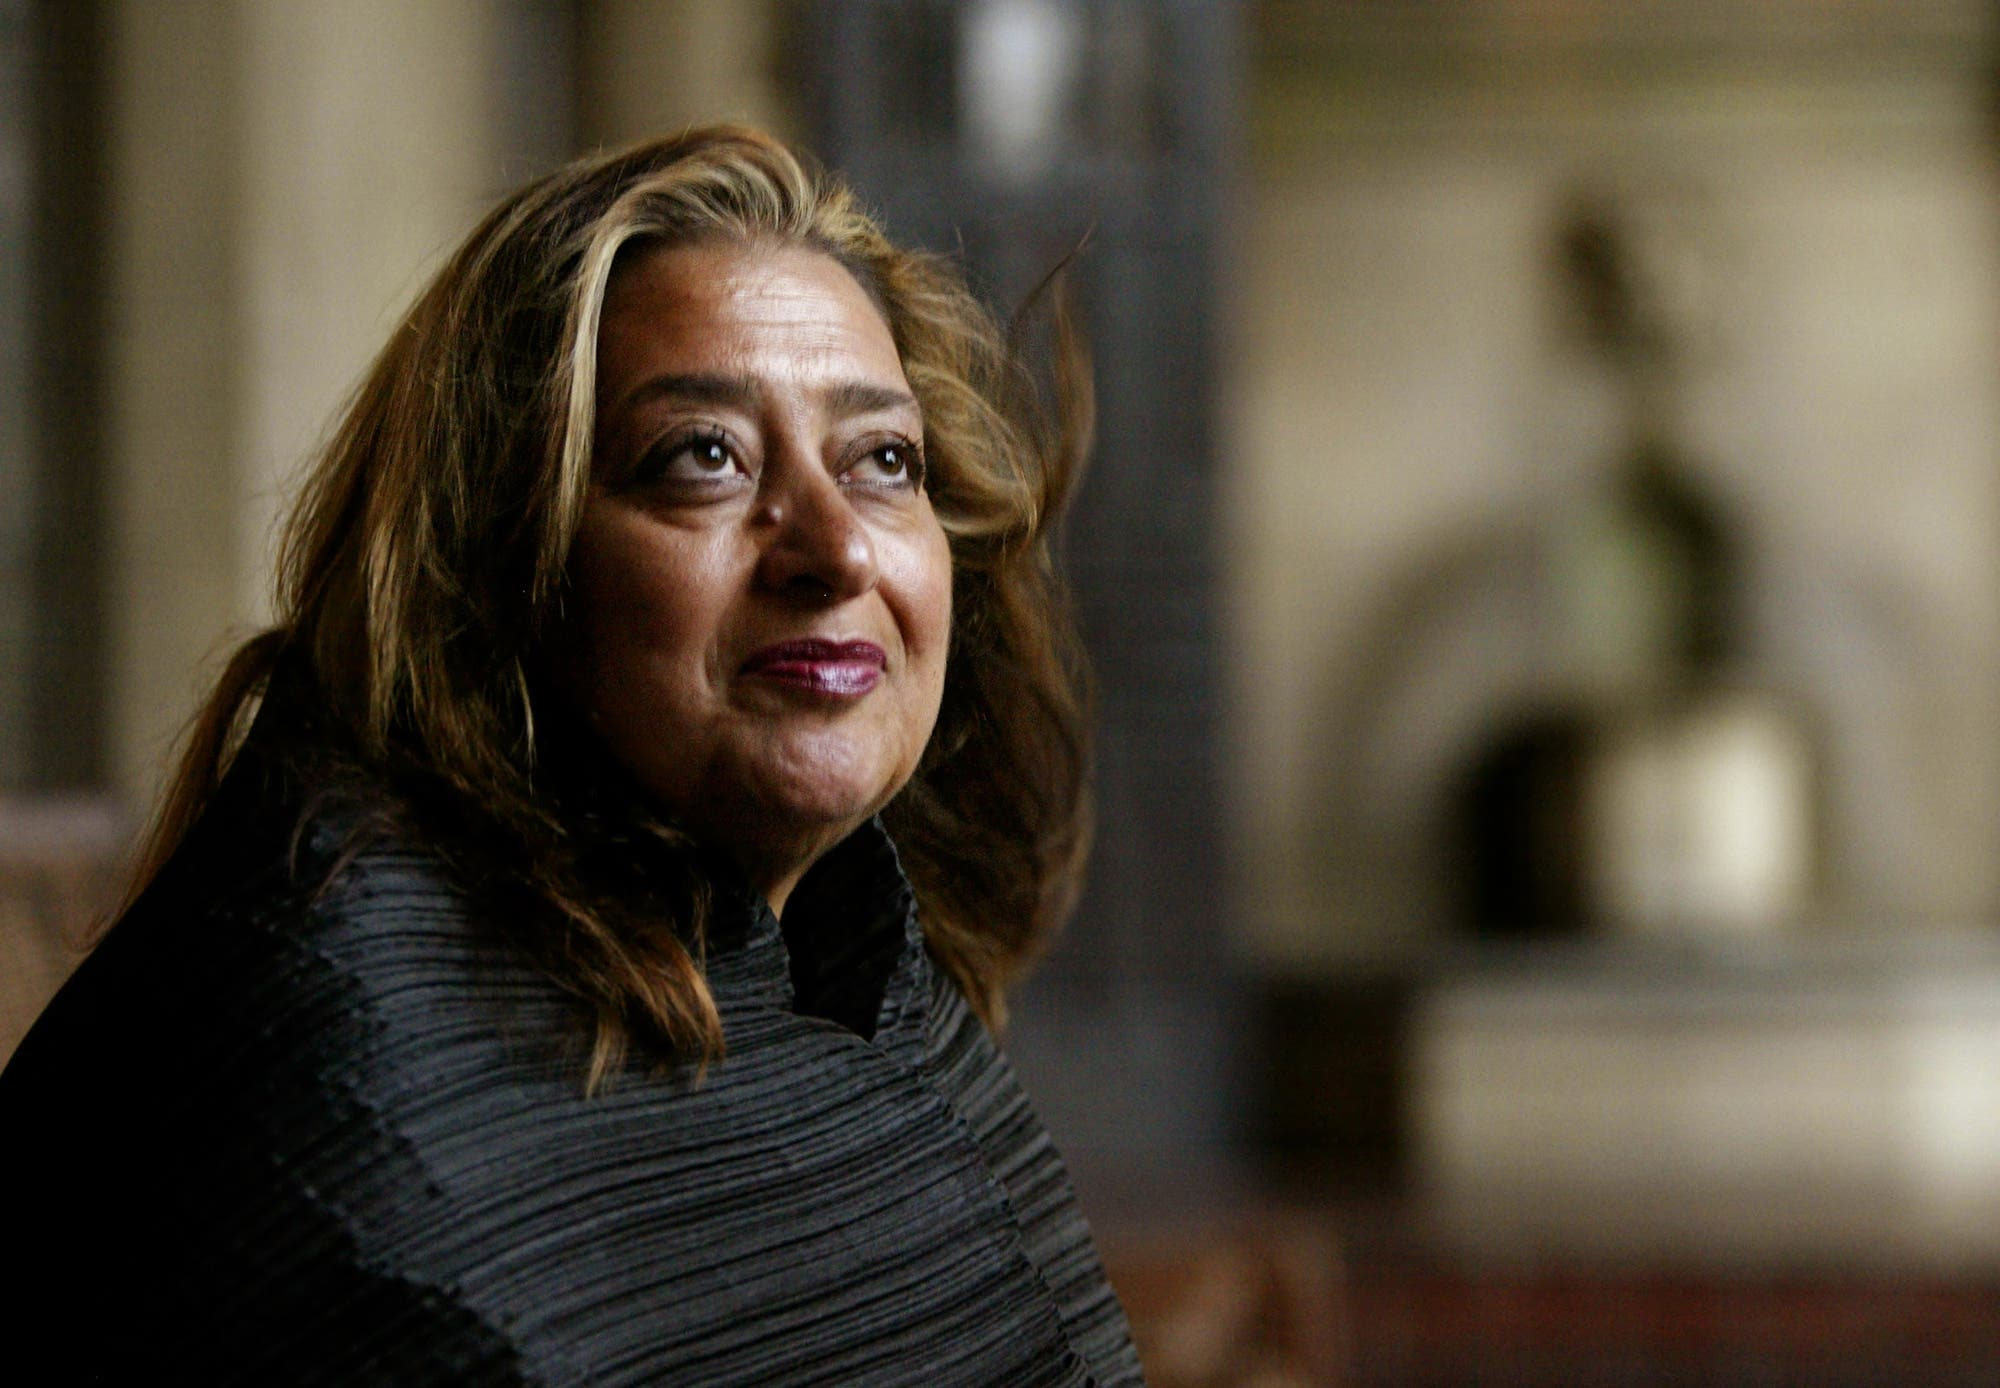 Pritzker Architecture Prize winner for 2004 Zaha Hadid poses Sunday, March 14, 2004, in West Hollywood, California. (AP)